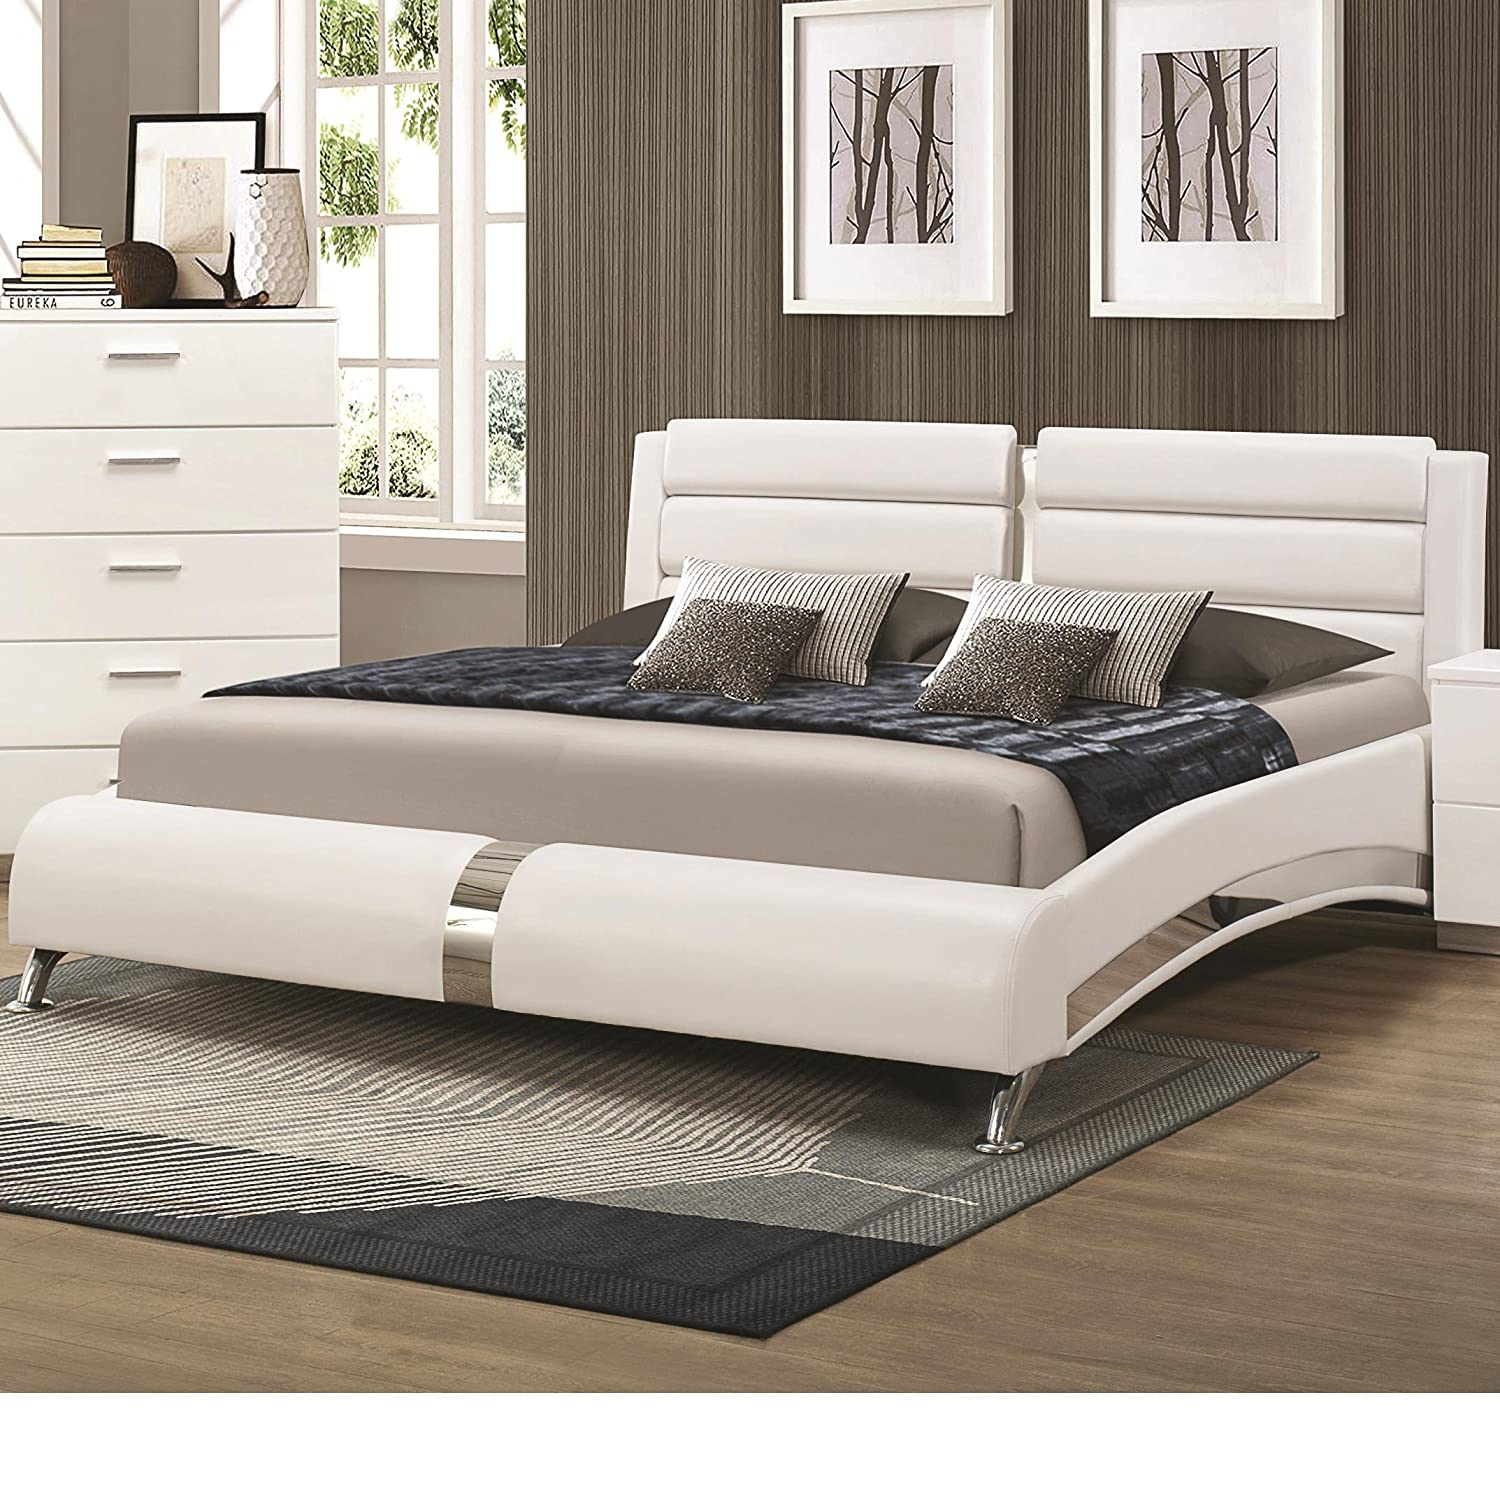 Nice California King Bed Frame Concept